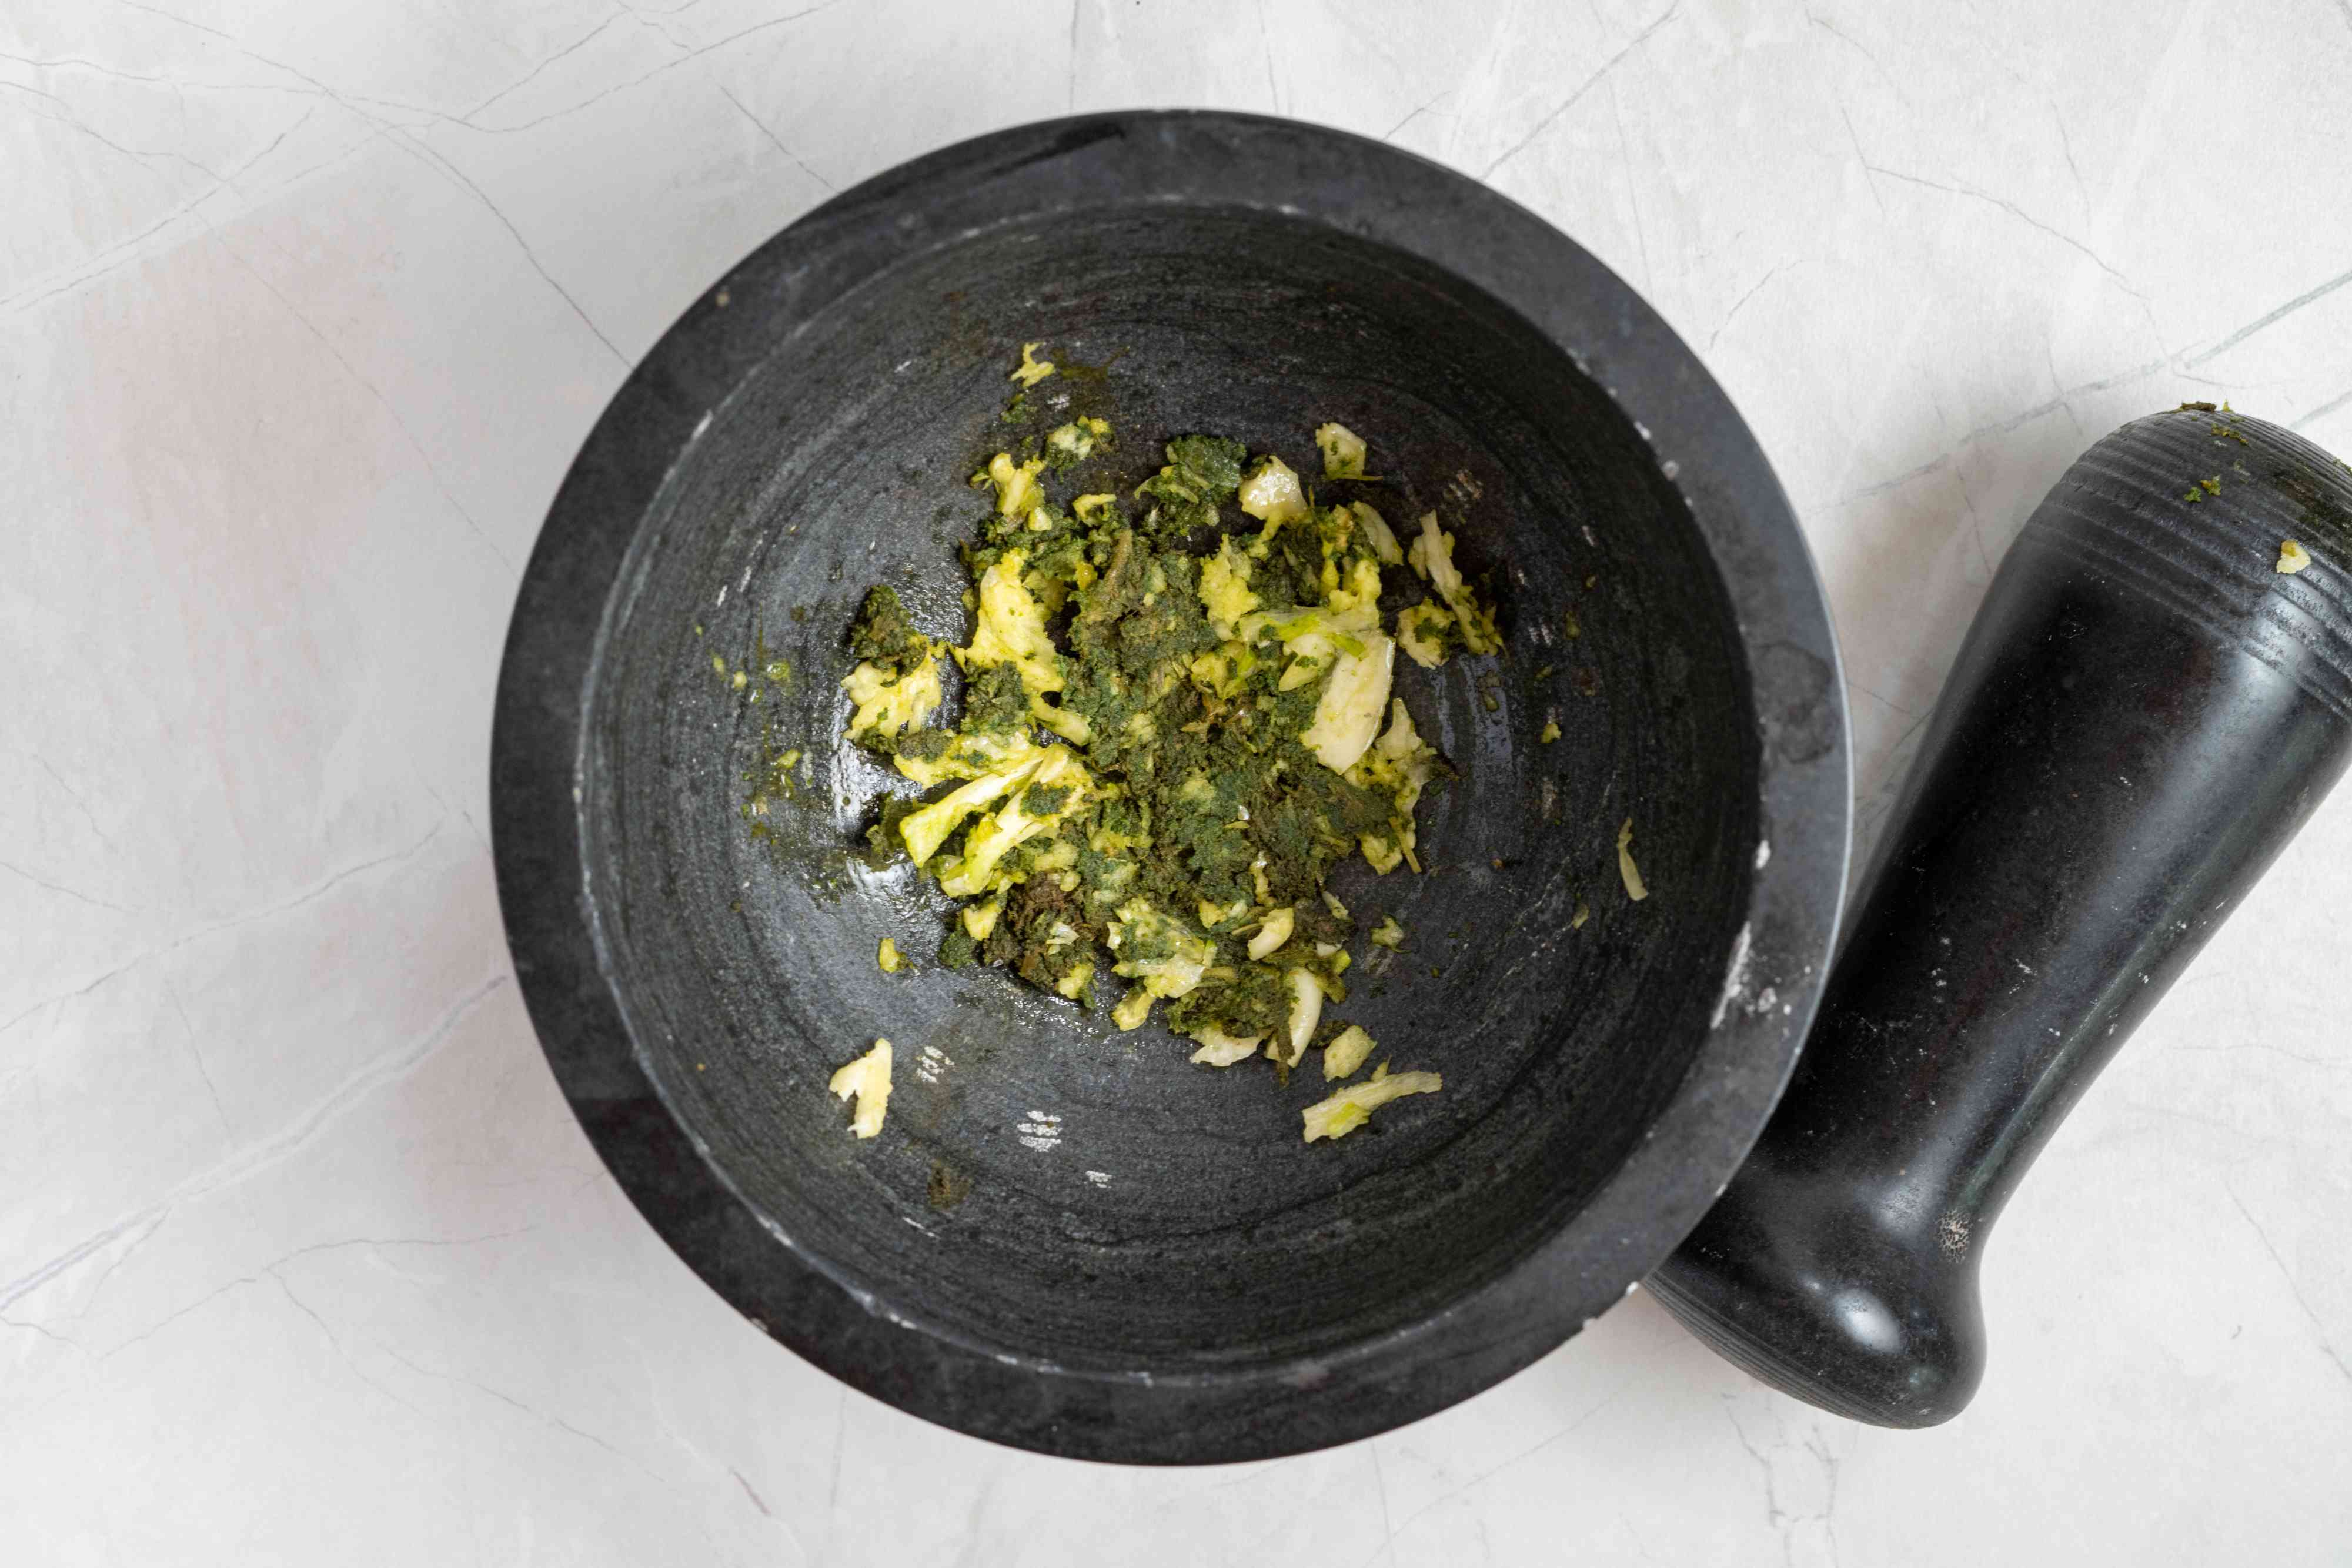 add garlic to the sage in the mortar and pestle